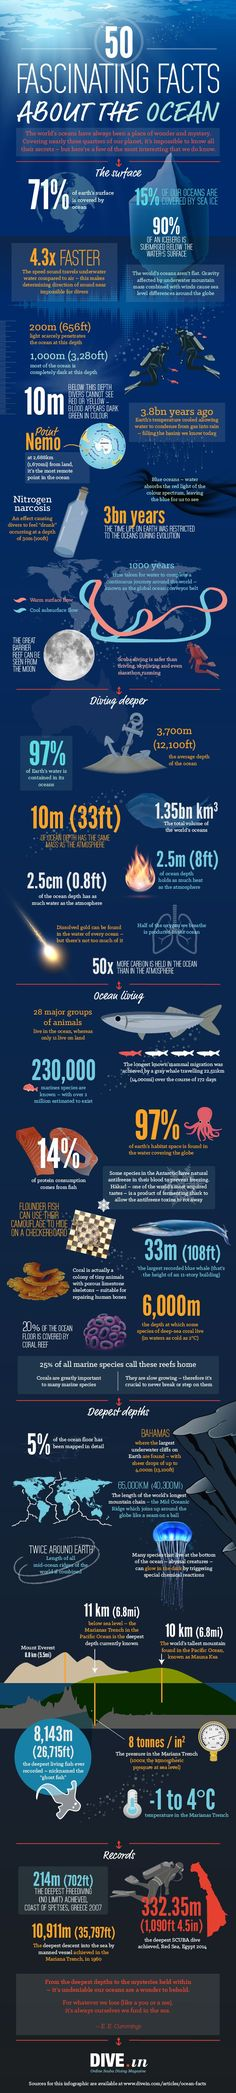 50 Fascinating Facts About Our Oceans [Infographic]